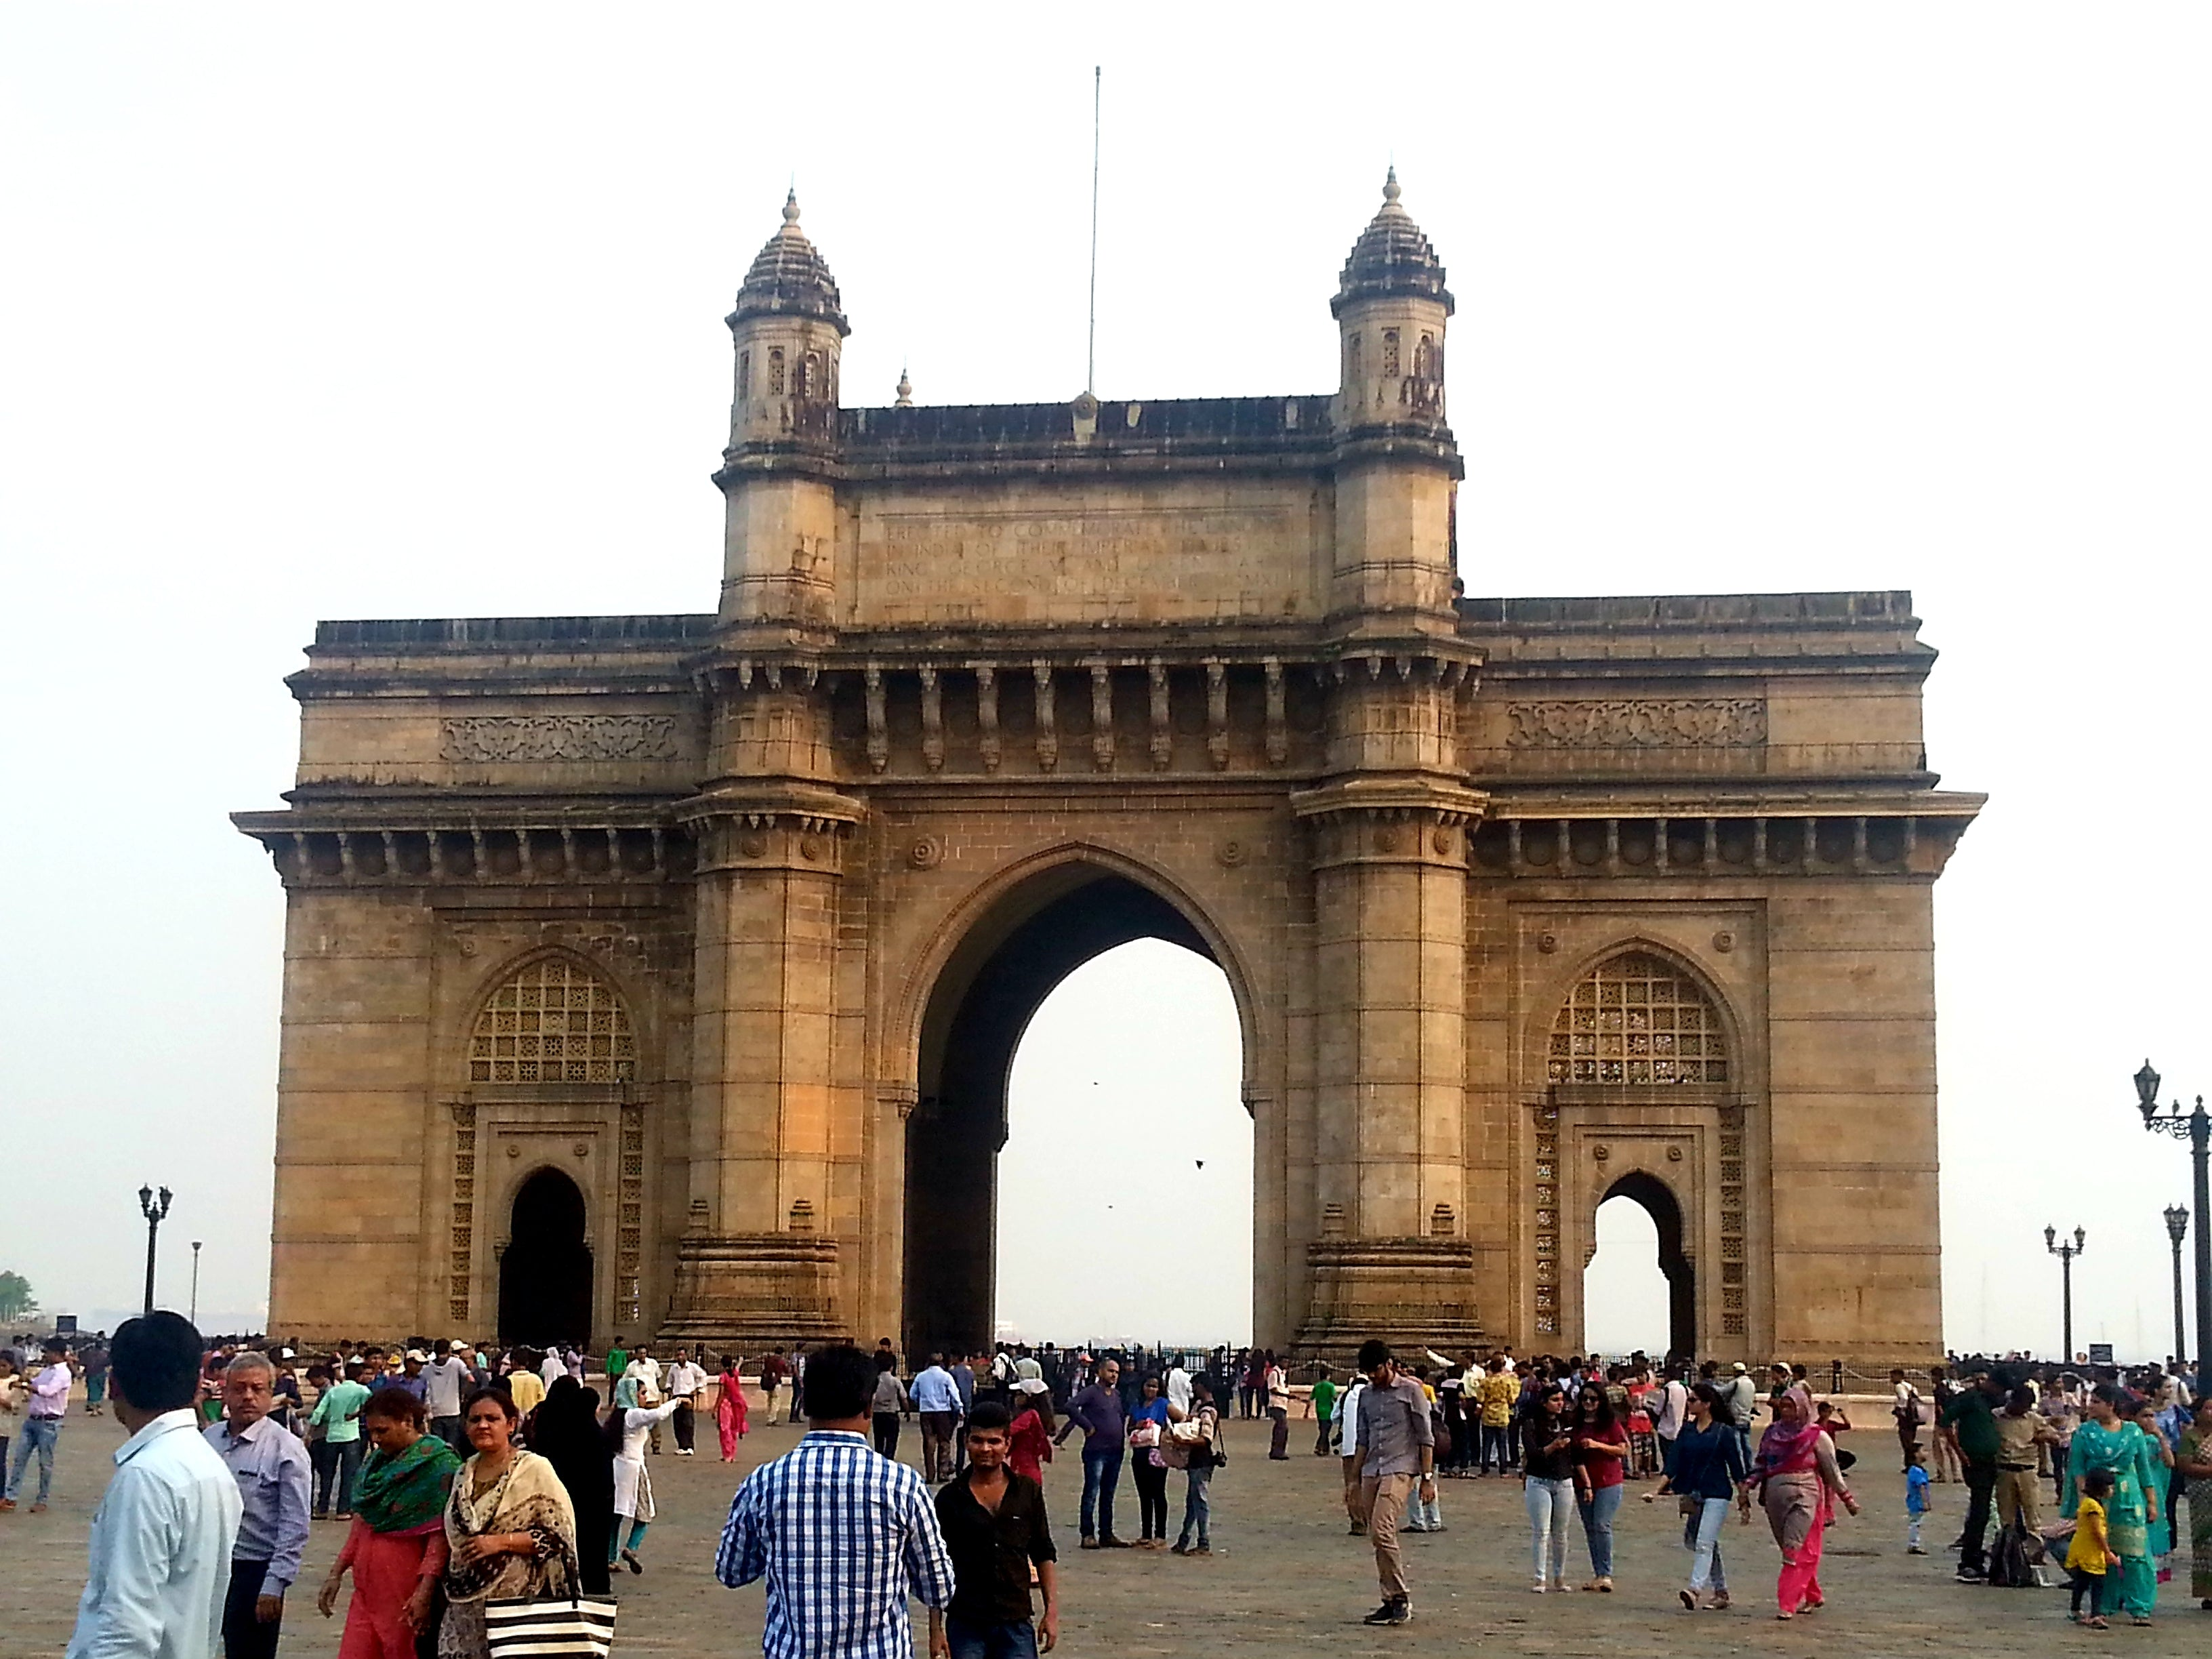 Australian Cricket Tours - The Gateway To India Monument, Built For The Passing Out Parade Of The British After Indian Independence In 1947 | Mumbai | India